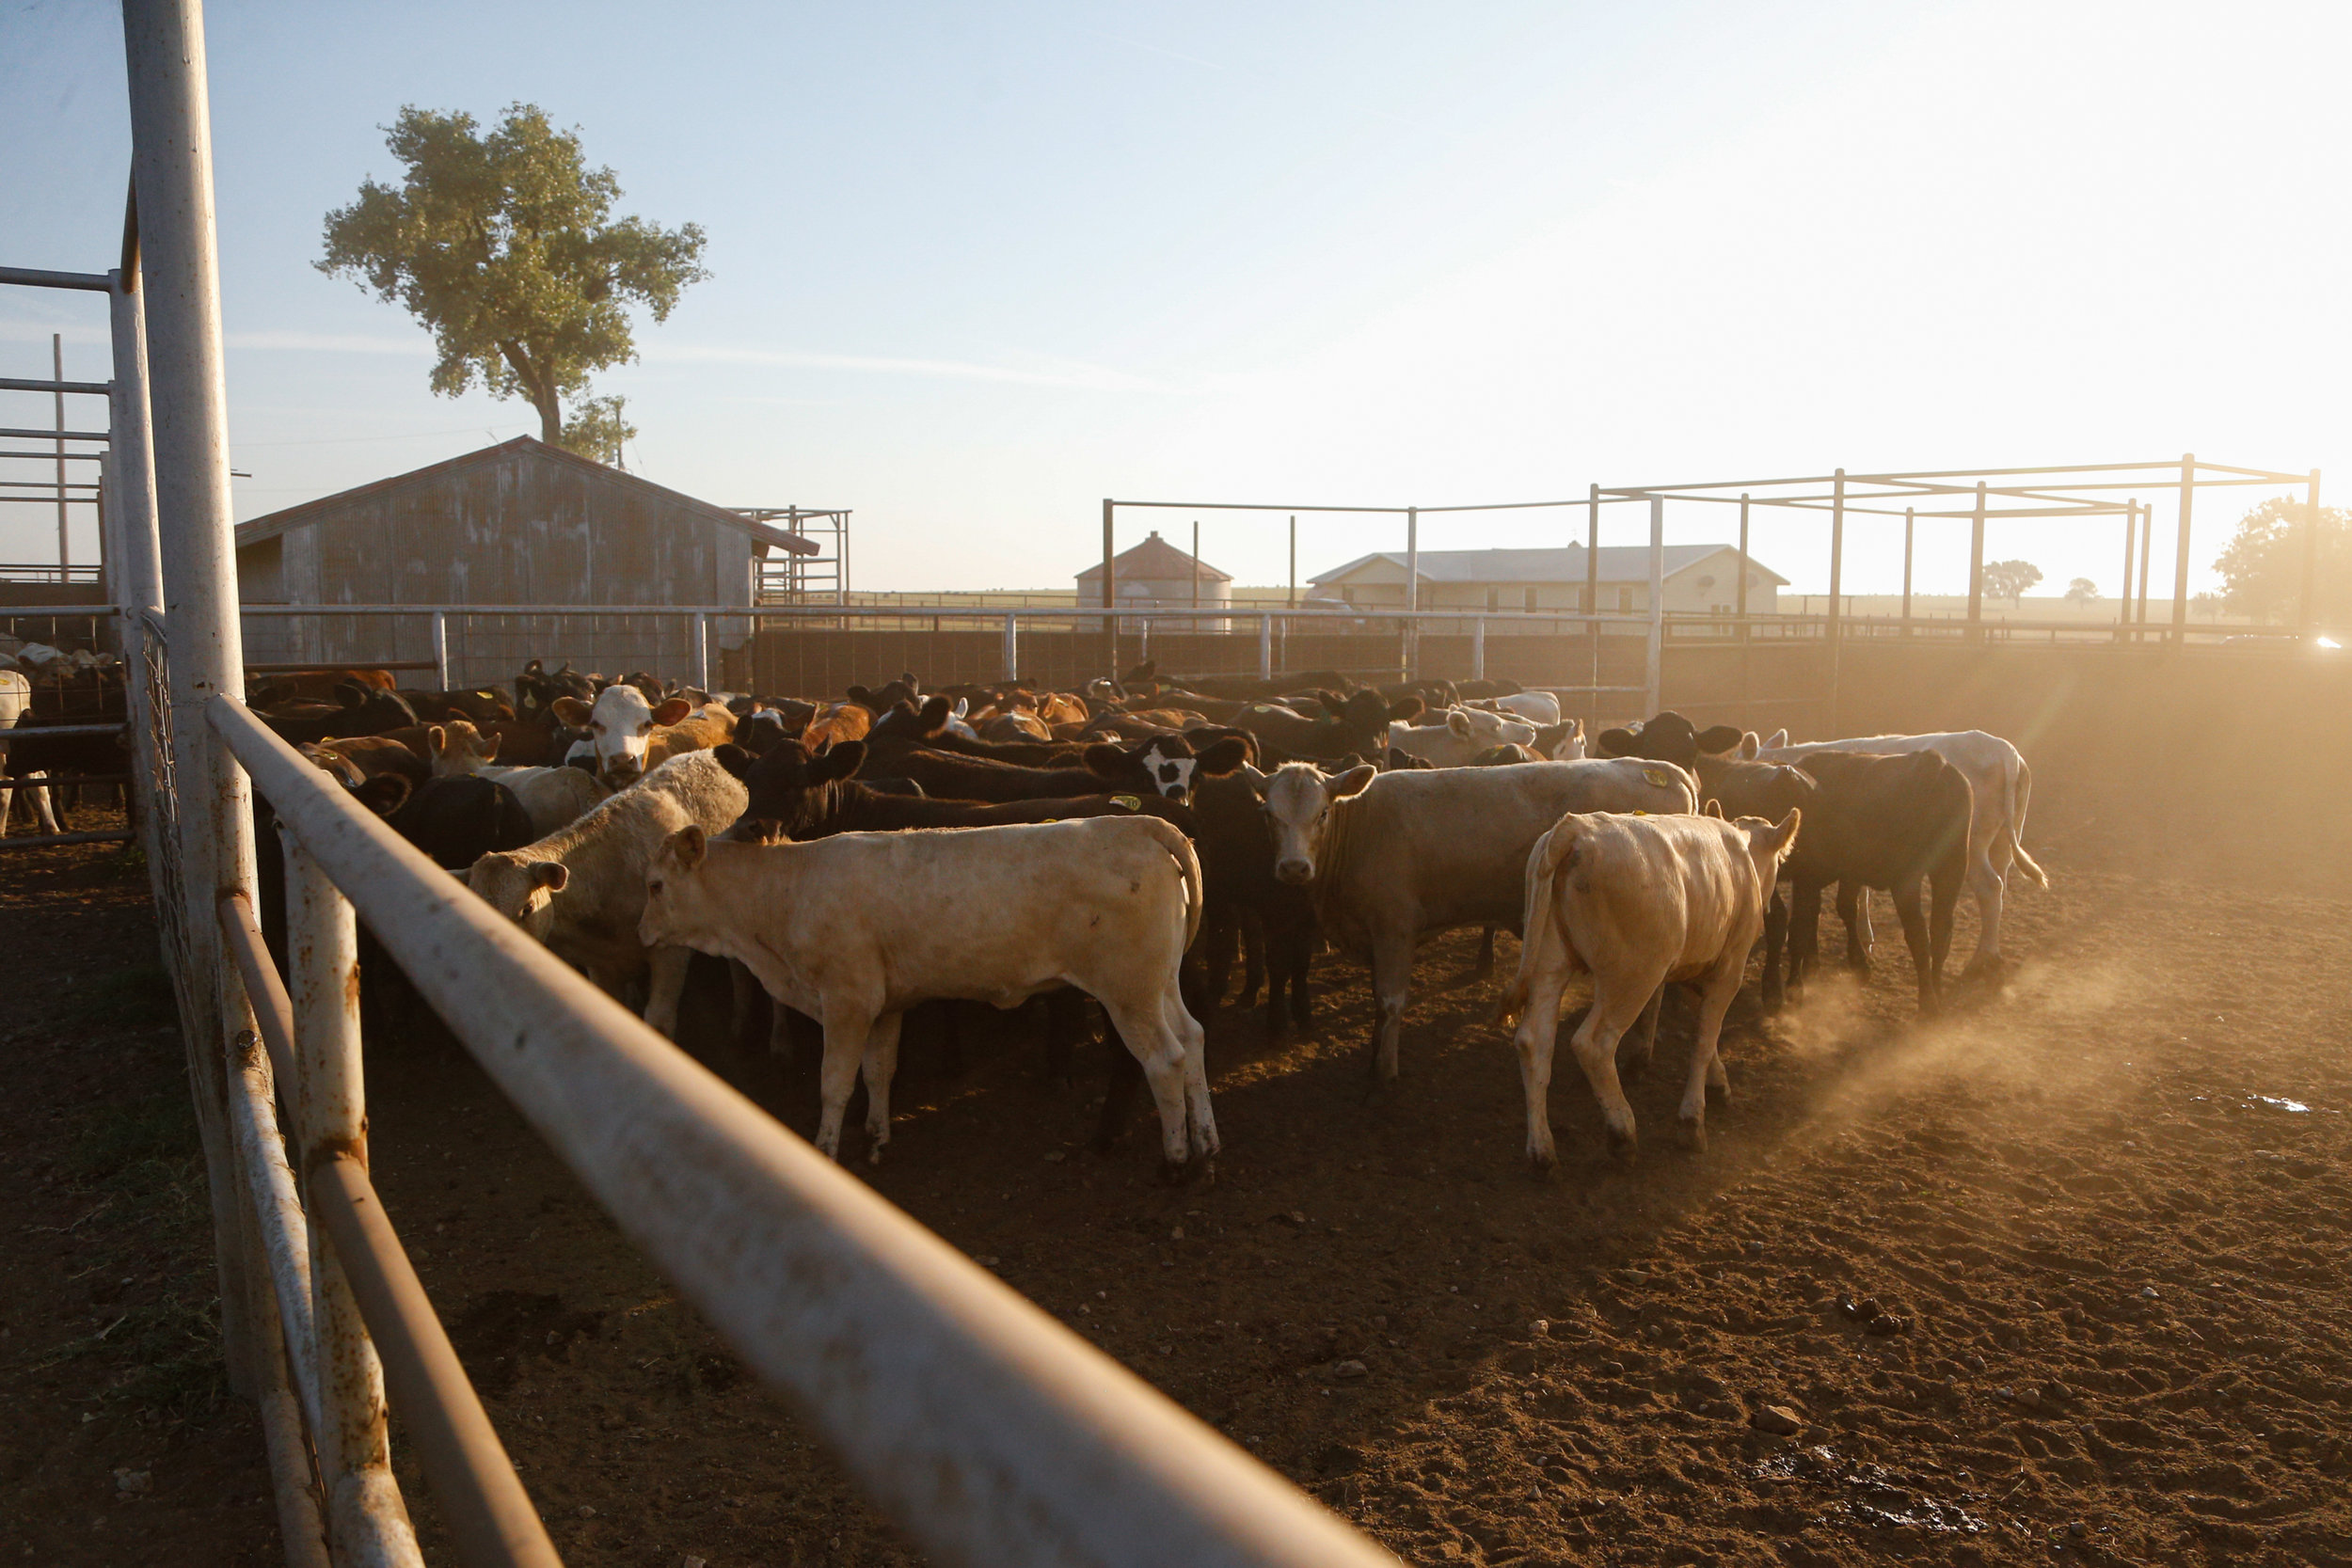 A new shipment of cattle await processing at the Stierwalt Ranch in Burbank, Oklahoma.